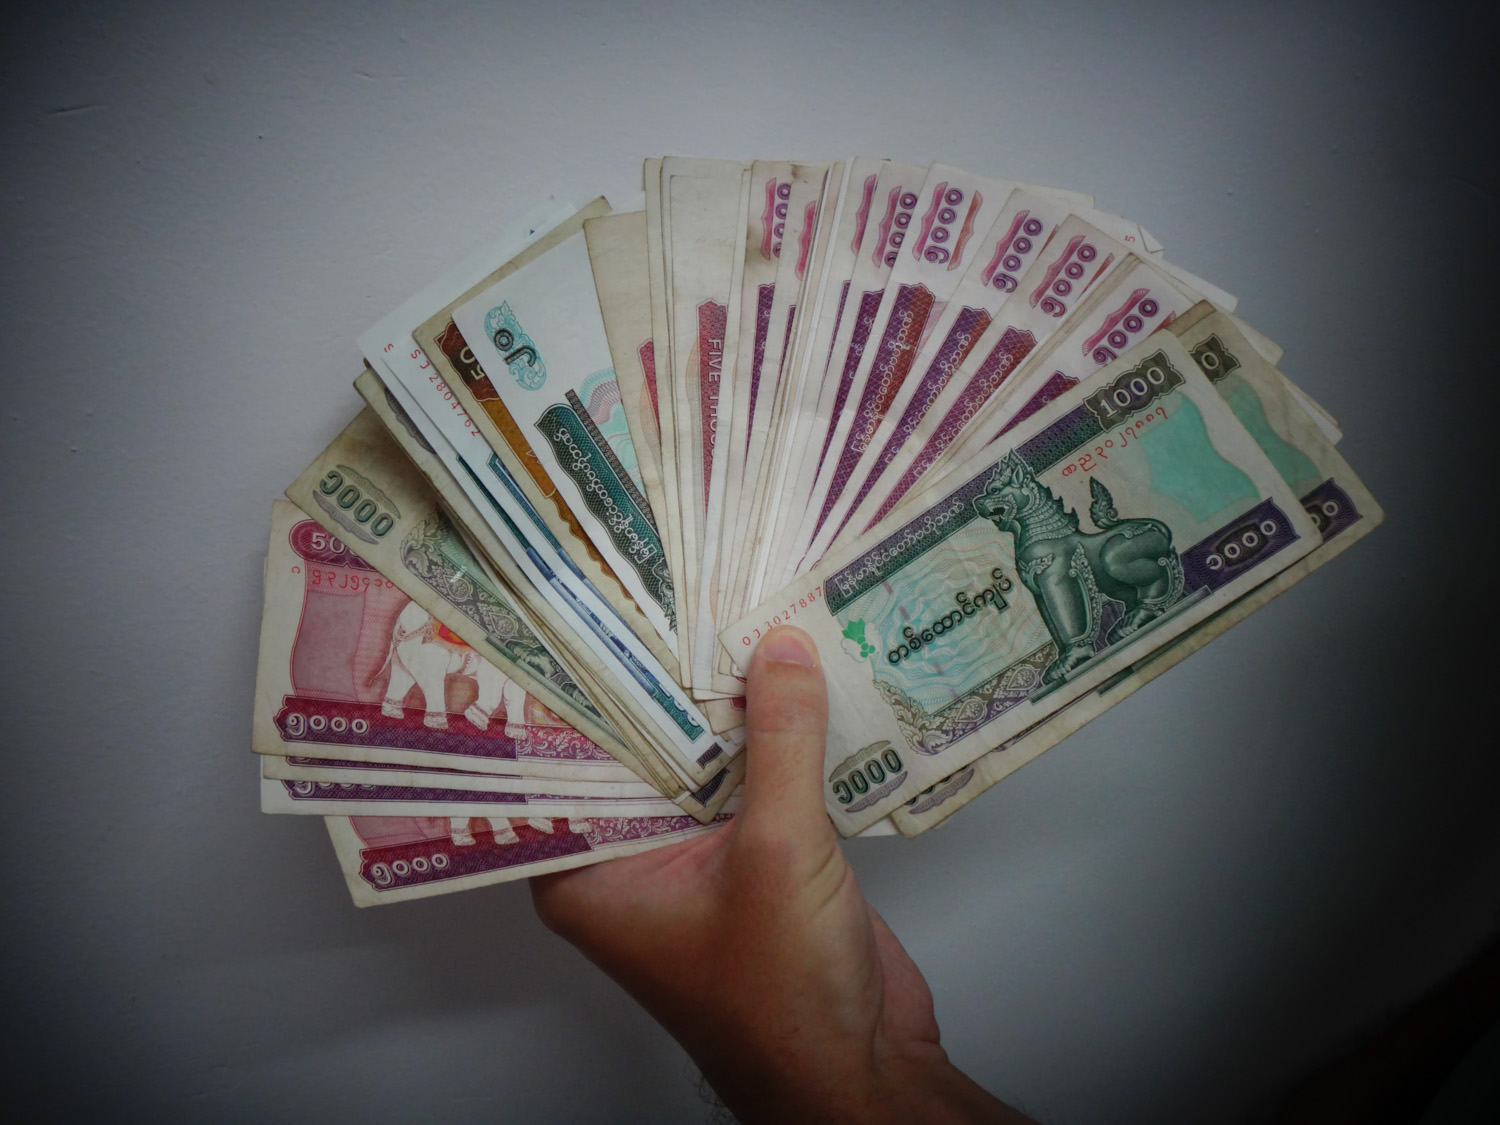 We're rich! This is what $200 USD looks like in Myanmar money.